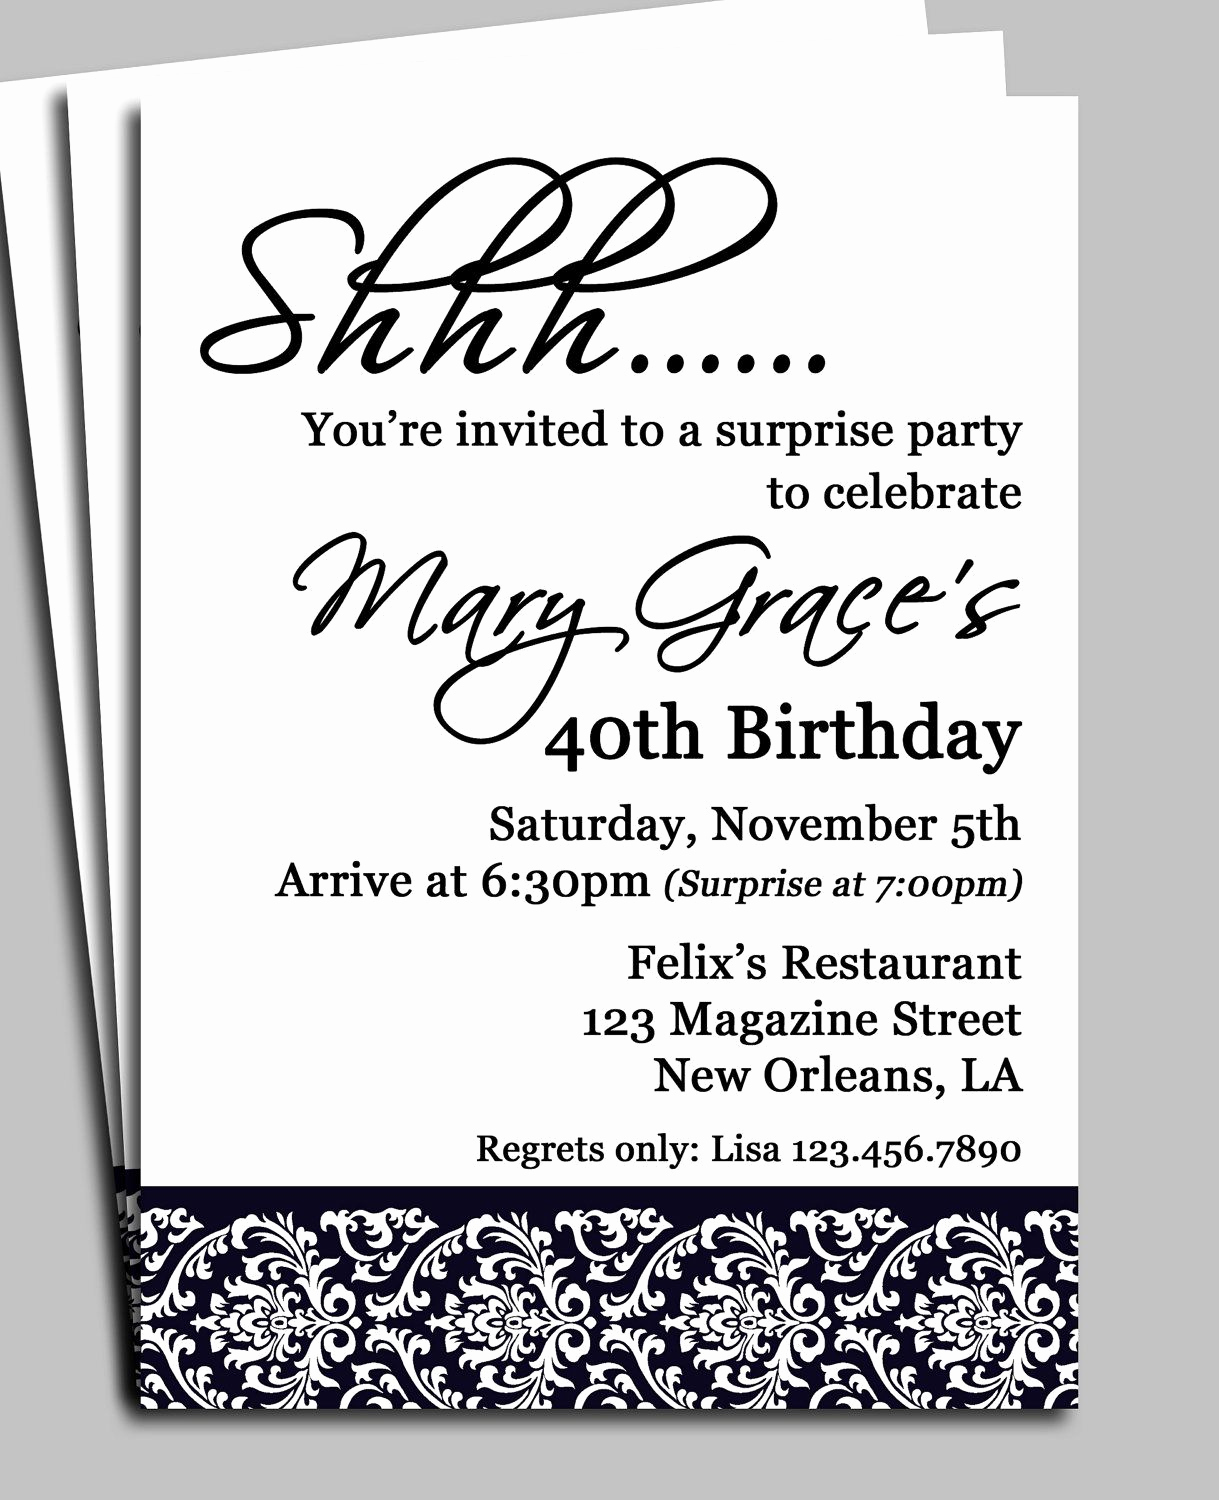 60th Birthday Party Invitation Wording Unique Invitation for Surprise Birthday Party Wording